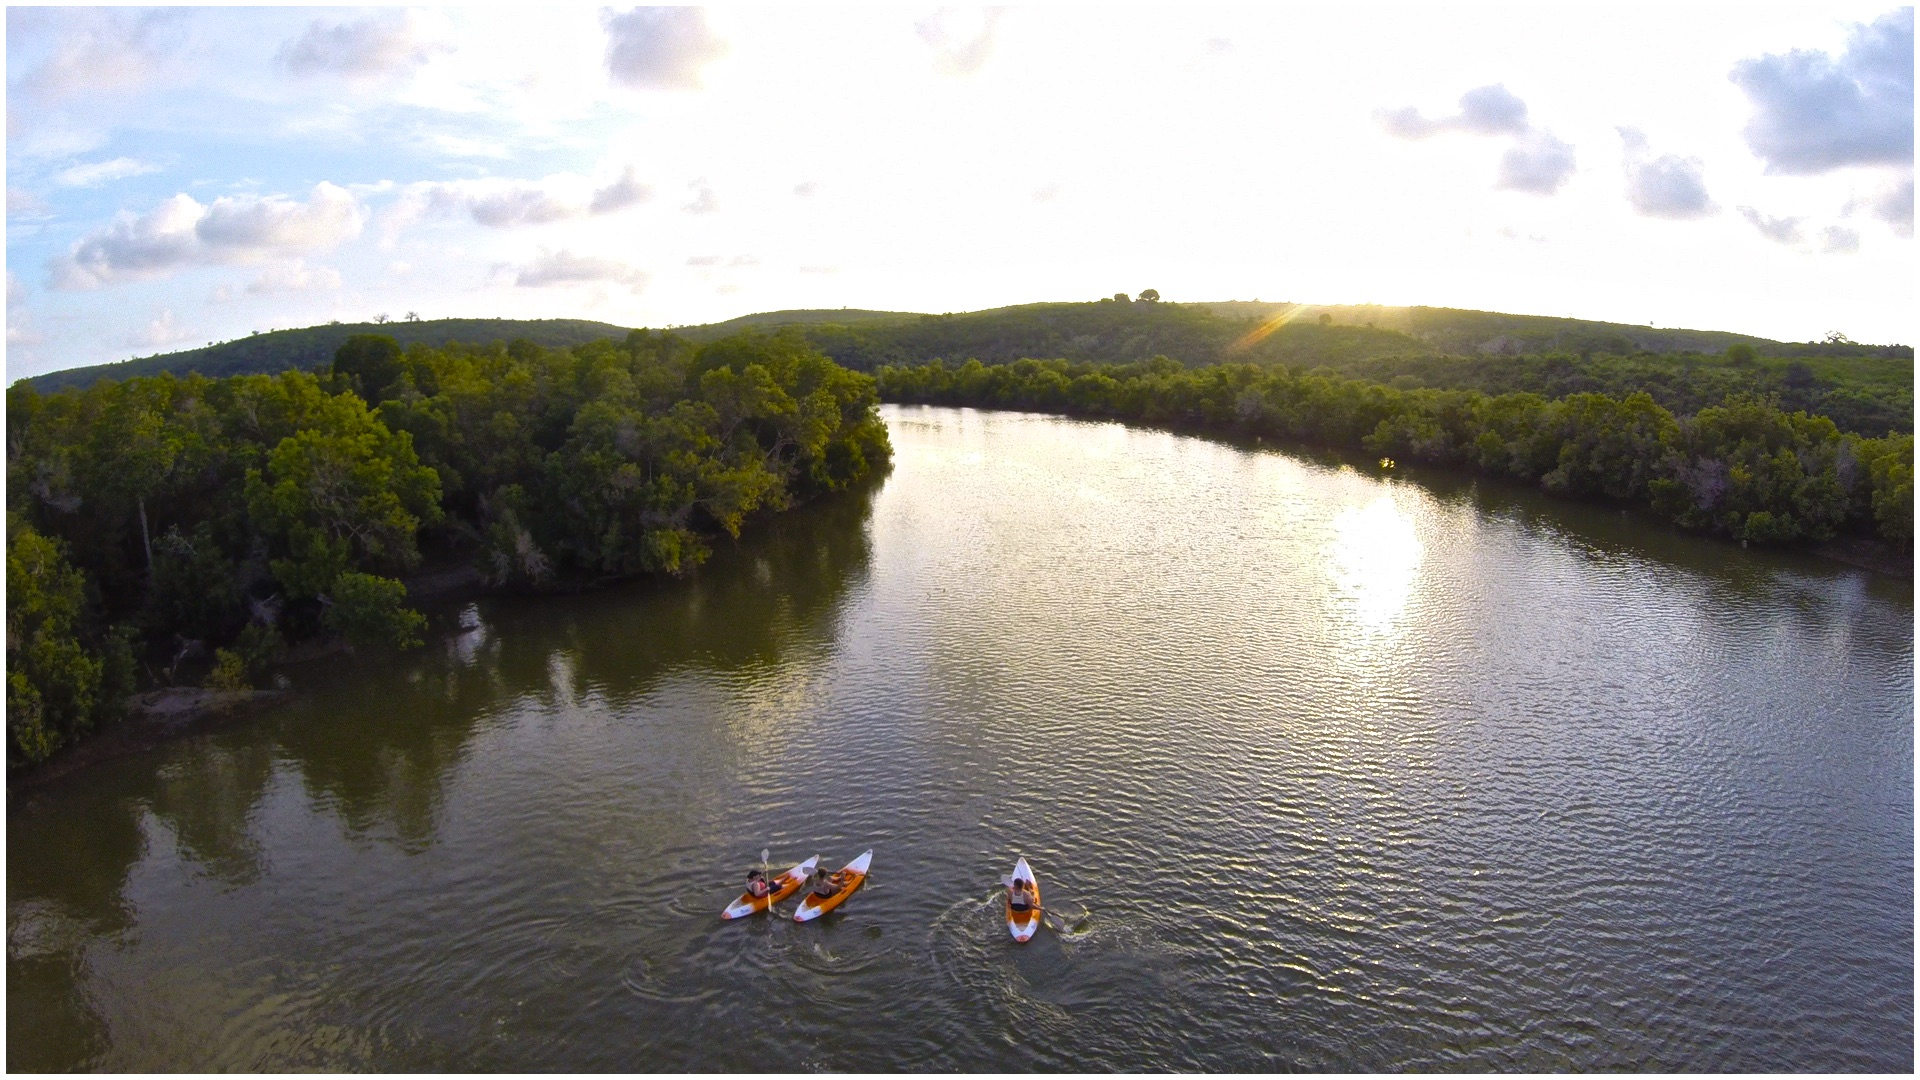 Kayak in the mangrove channels west of Kilifi.